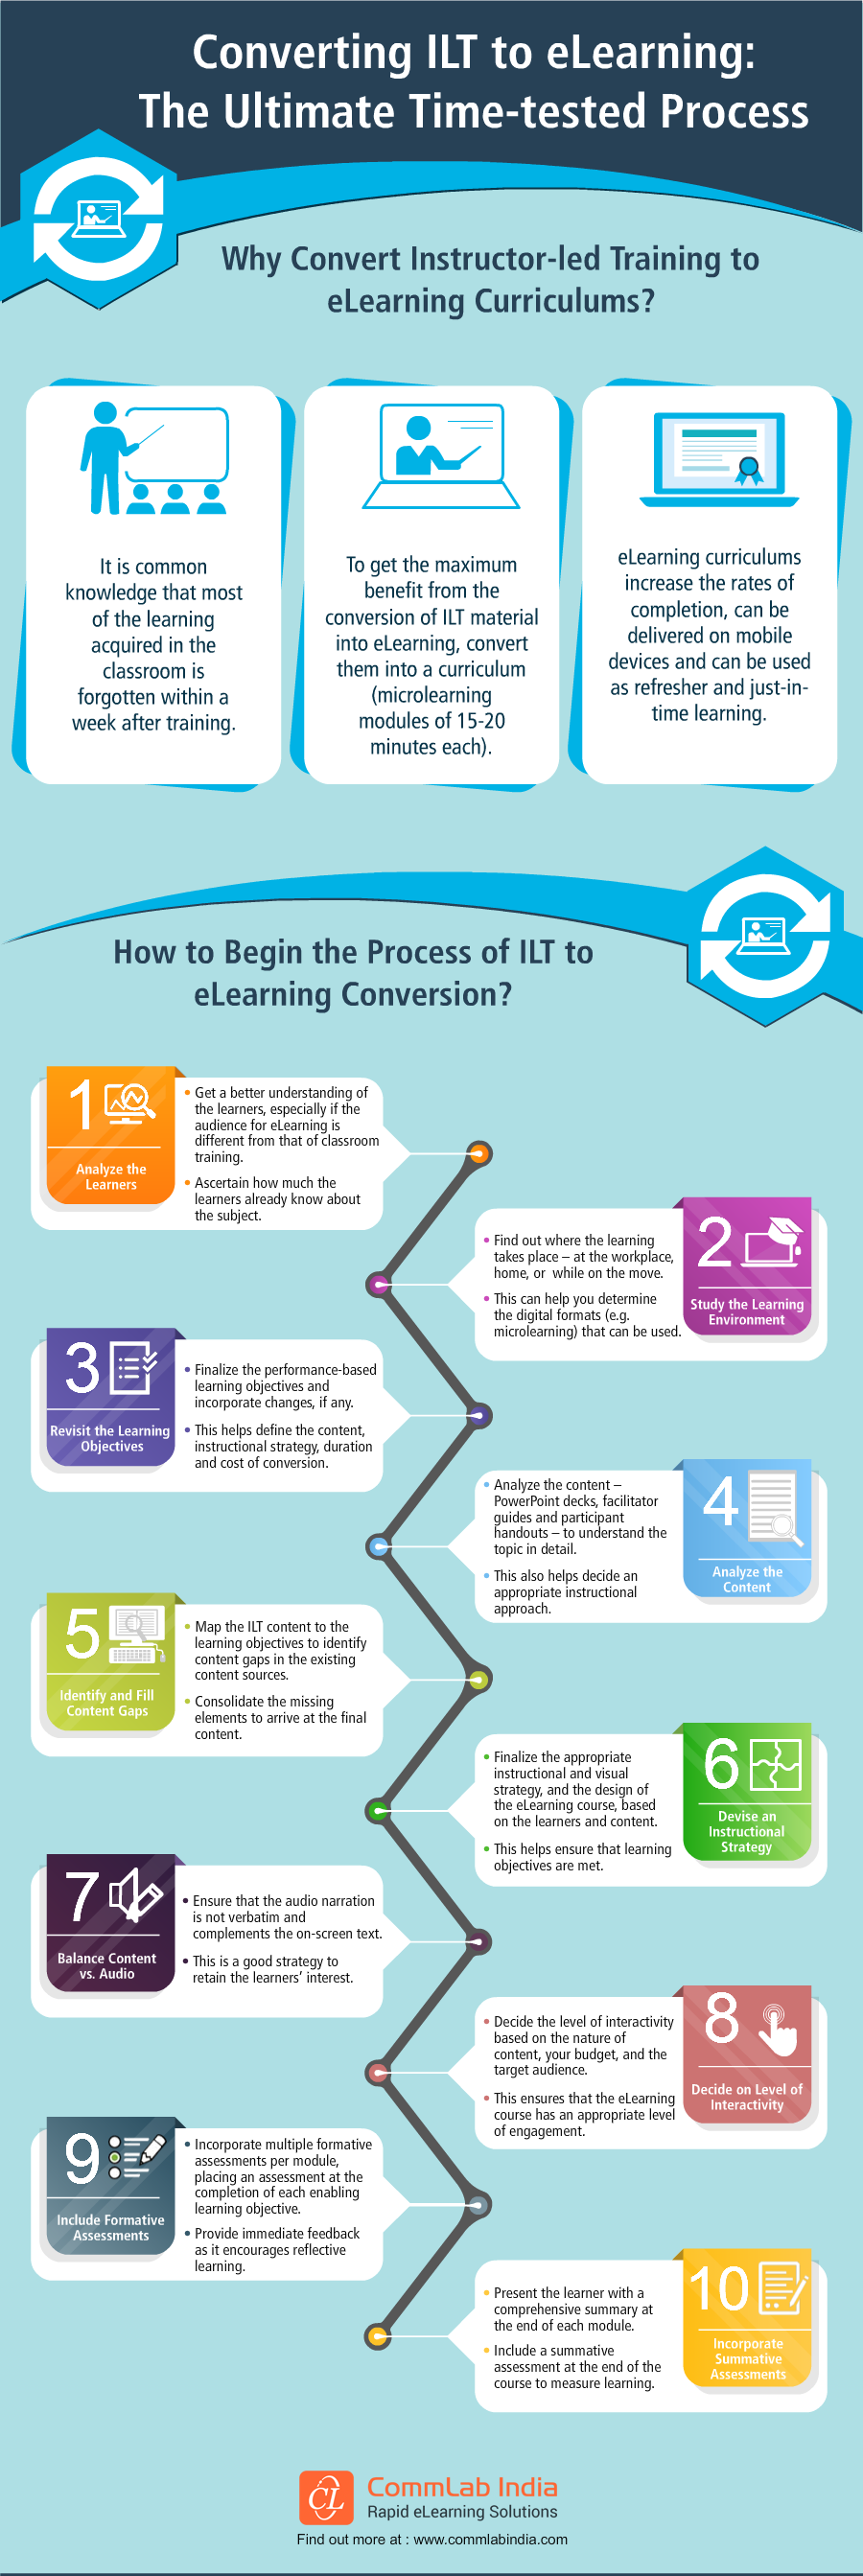 Converting ILT to eLearning: The Ultimate Time-tested Process [Infographic]